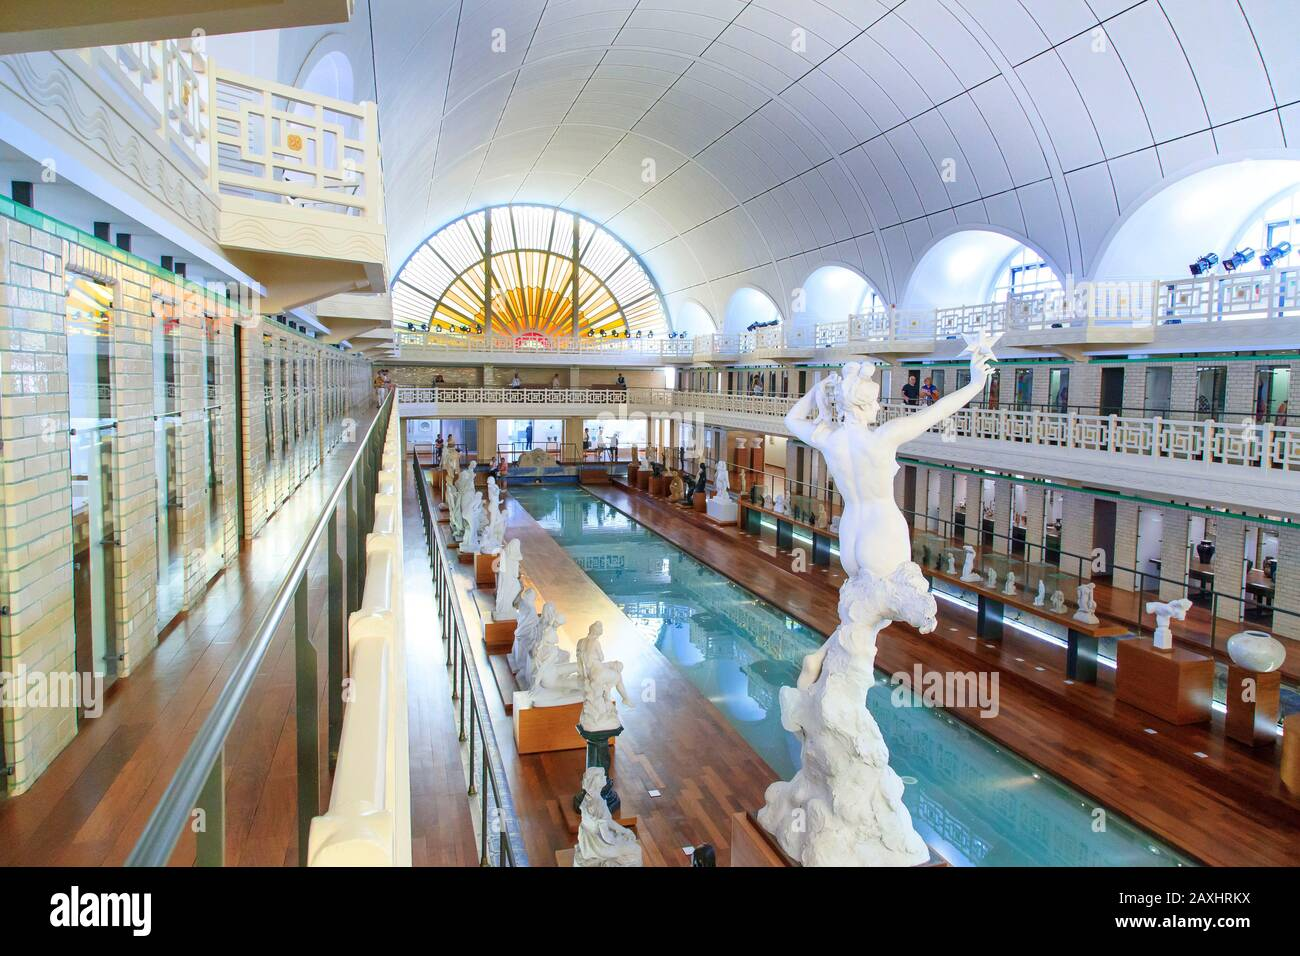 https www alamy com roubaix northern france la piscine the swimming pool museum of art and industry in a former art deco style swimming pool built by albert baert image343369822 html